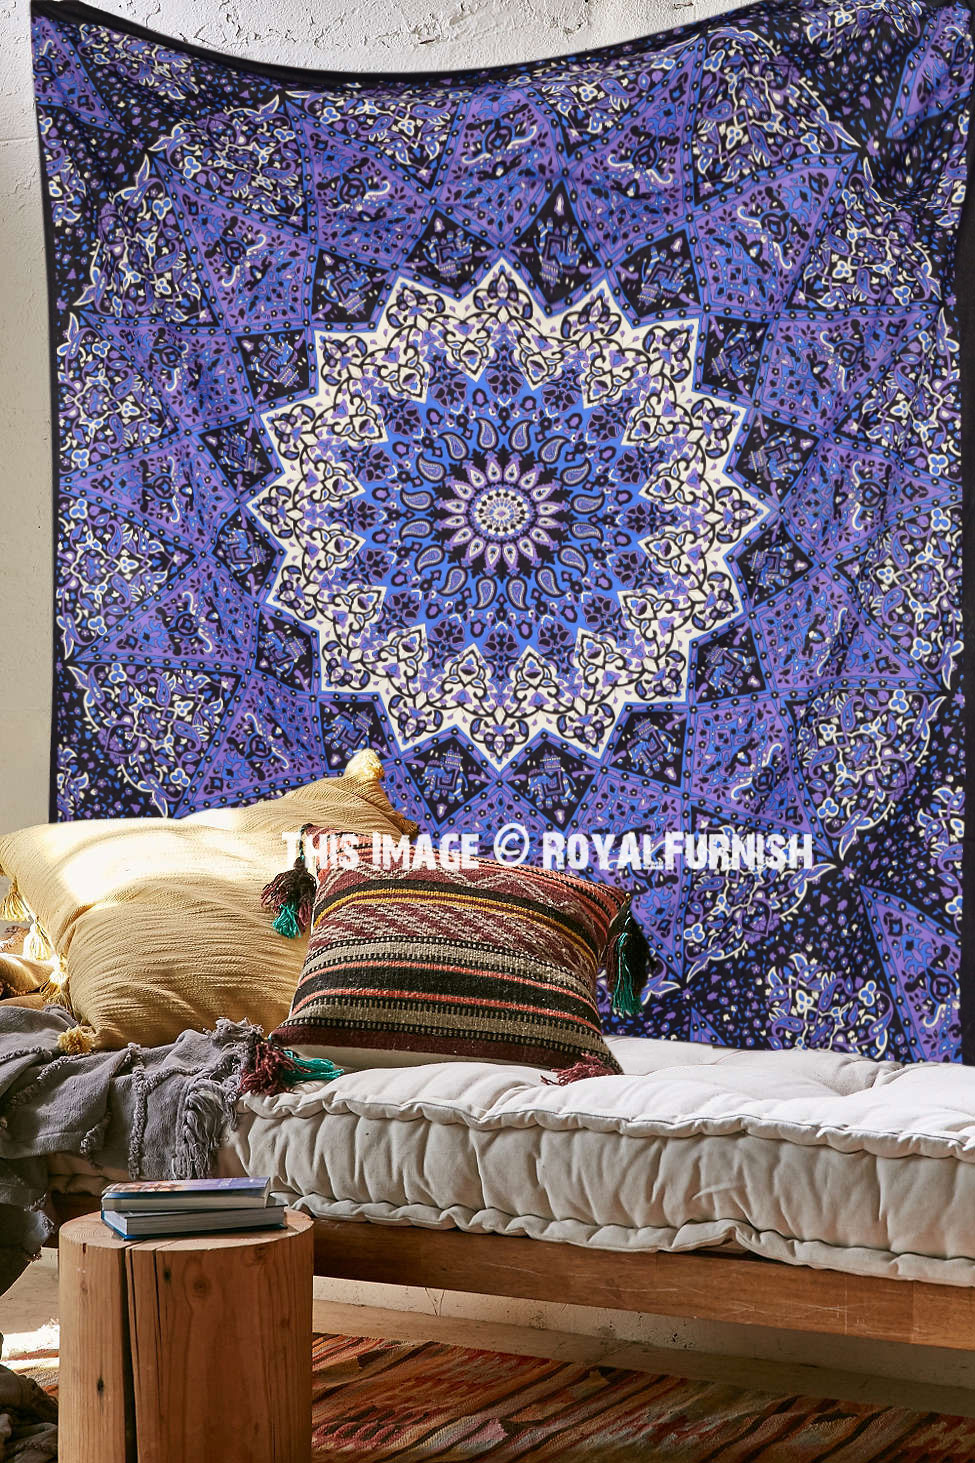 Colorful 3 D Star Mandala Tapestry Psychedelic Hippie Wall Hanging Bedding  RoyalFurnishcom